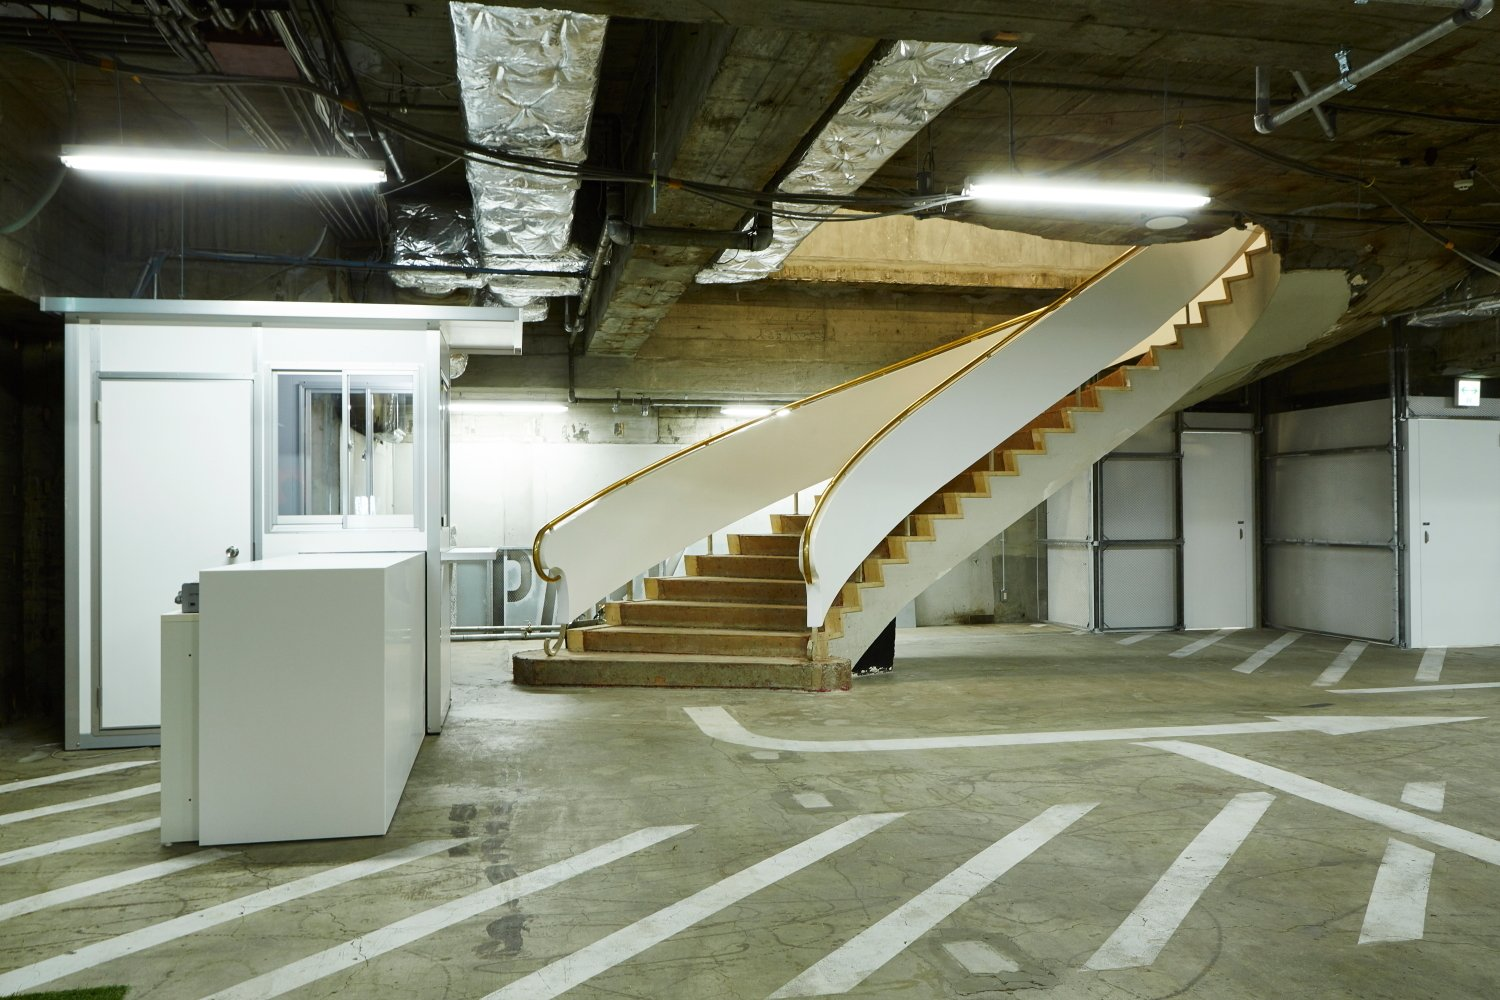 Garage  Photo 4 of 11 in 10 Surprising Garage Transformations from A Surprise Hides in this Tokyo Parking Garage